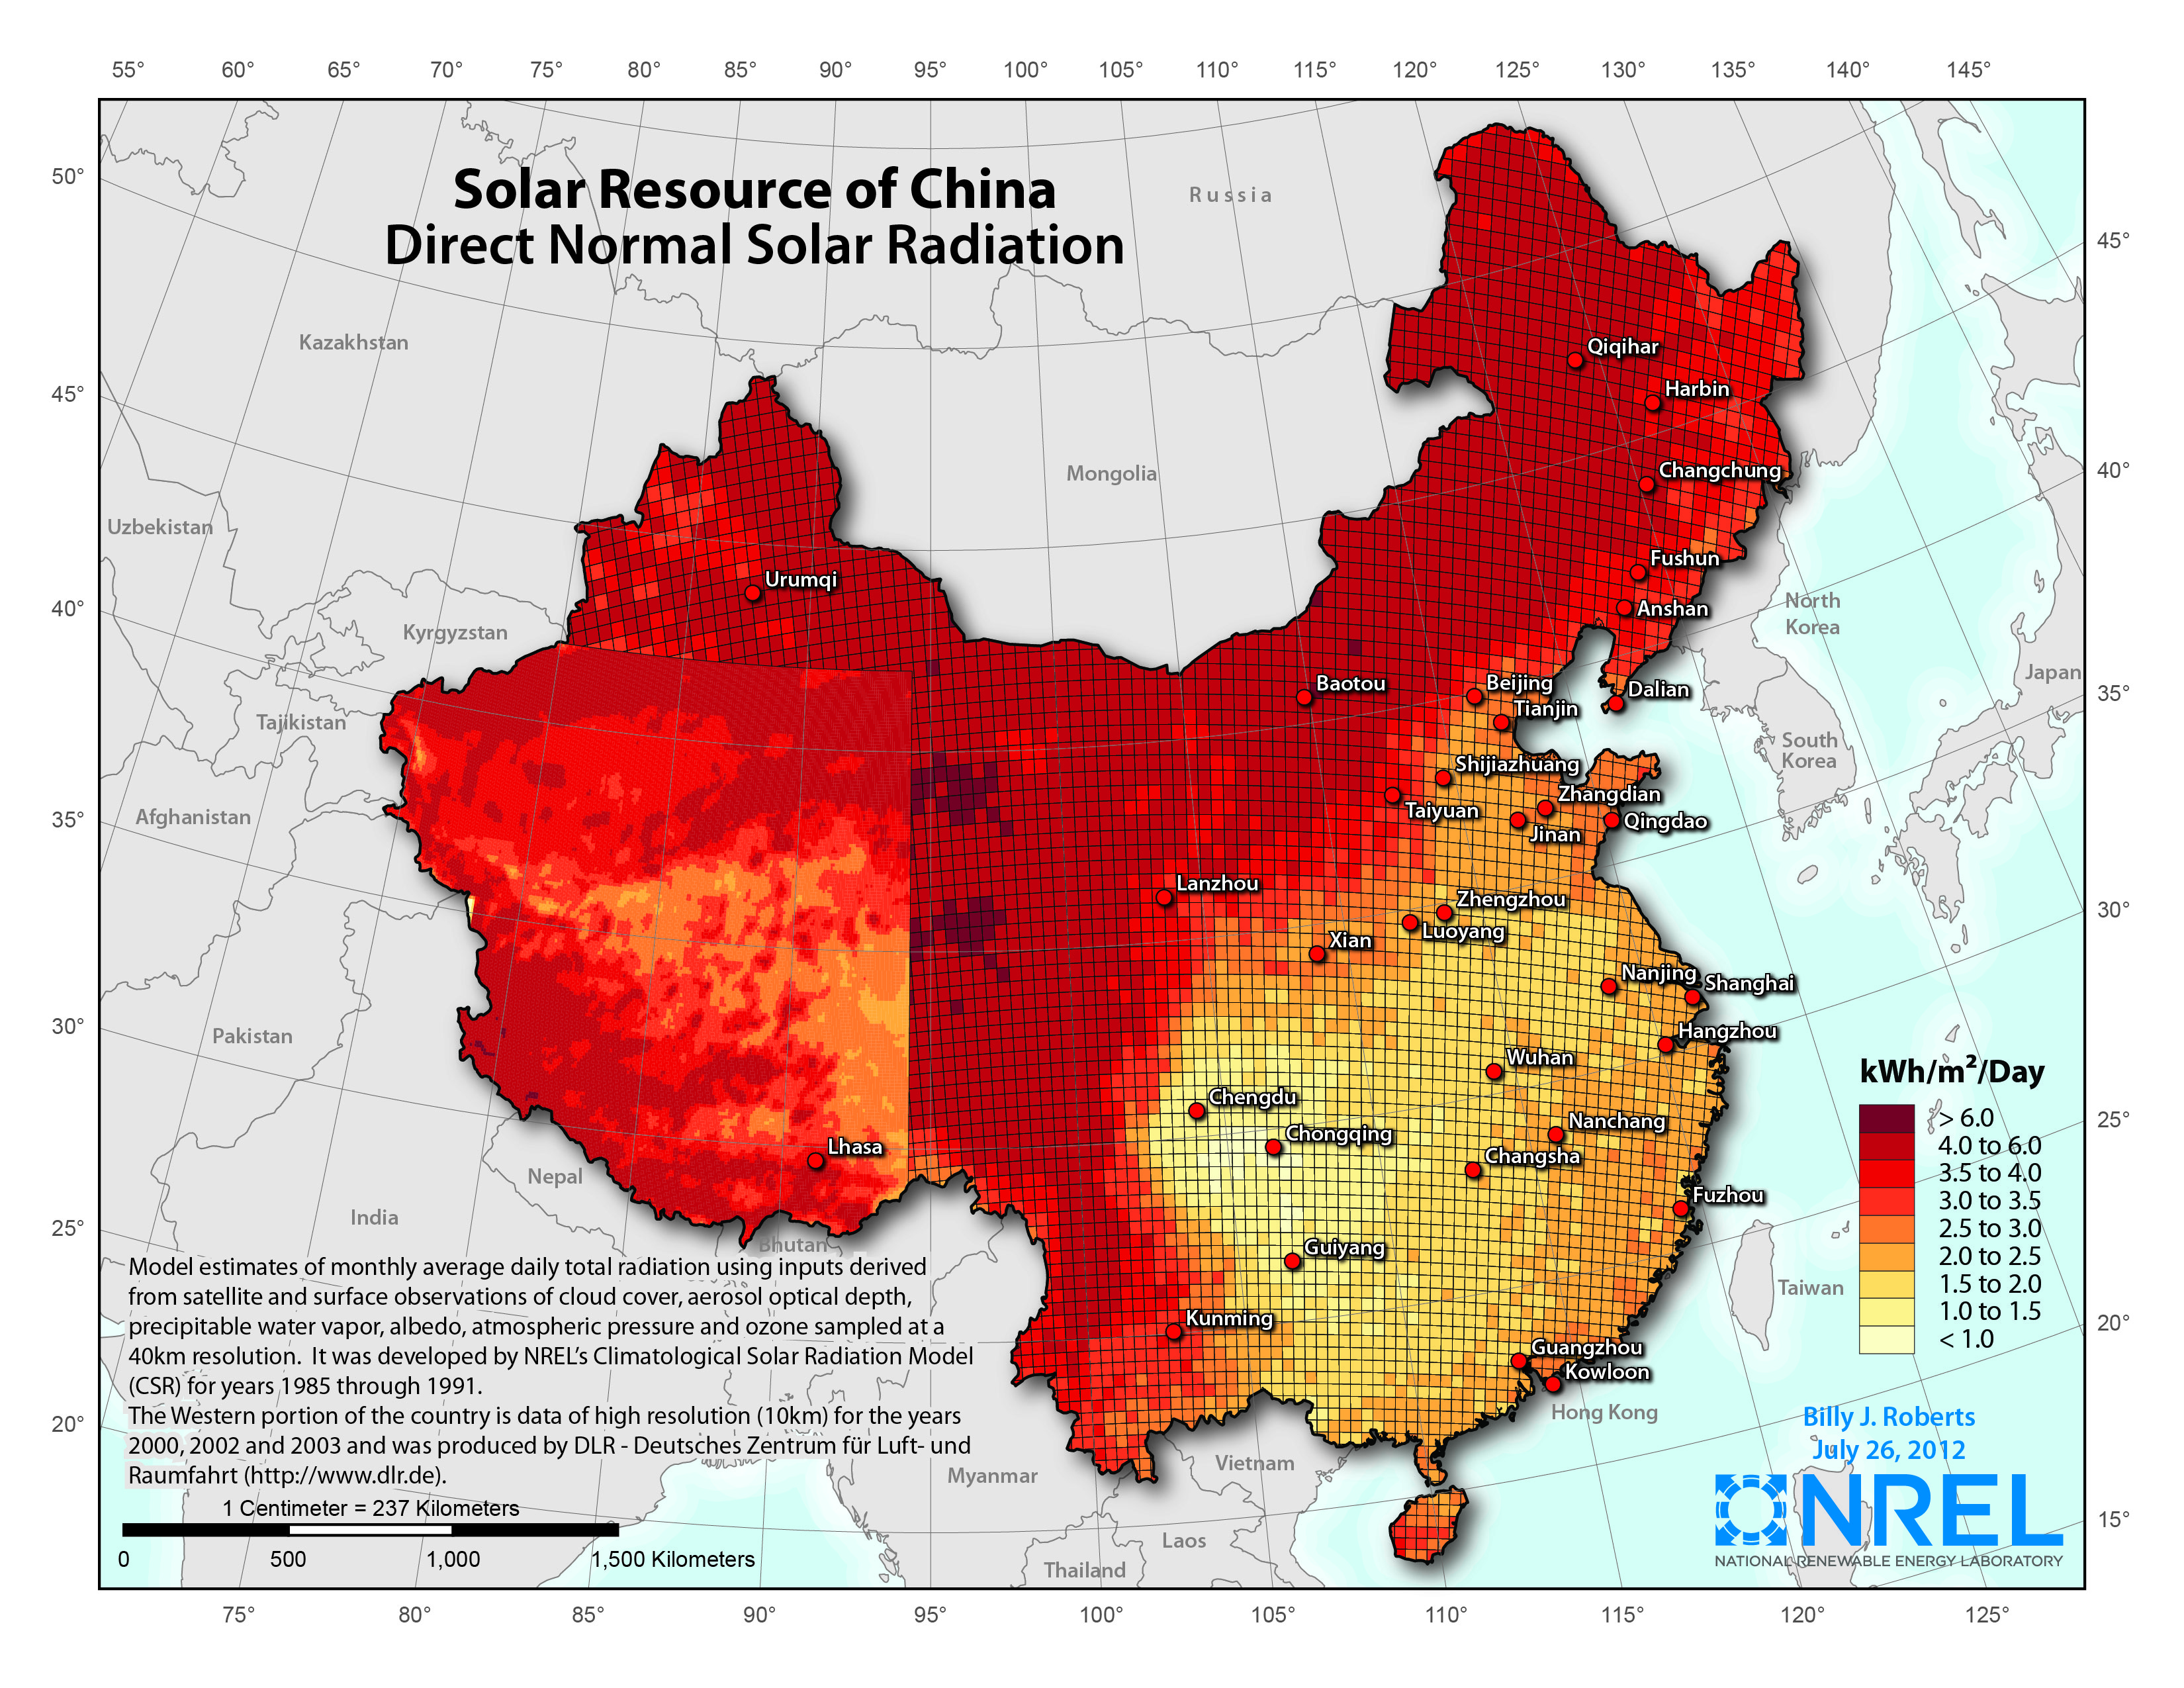 CBI BIZ to Present China Concentrating Solar Power Summit 2013 in ...